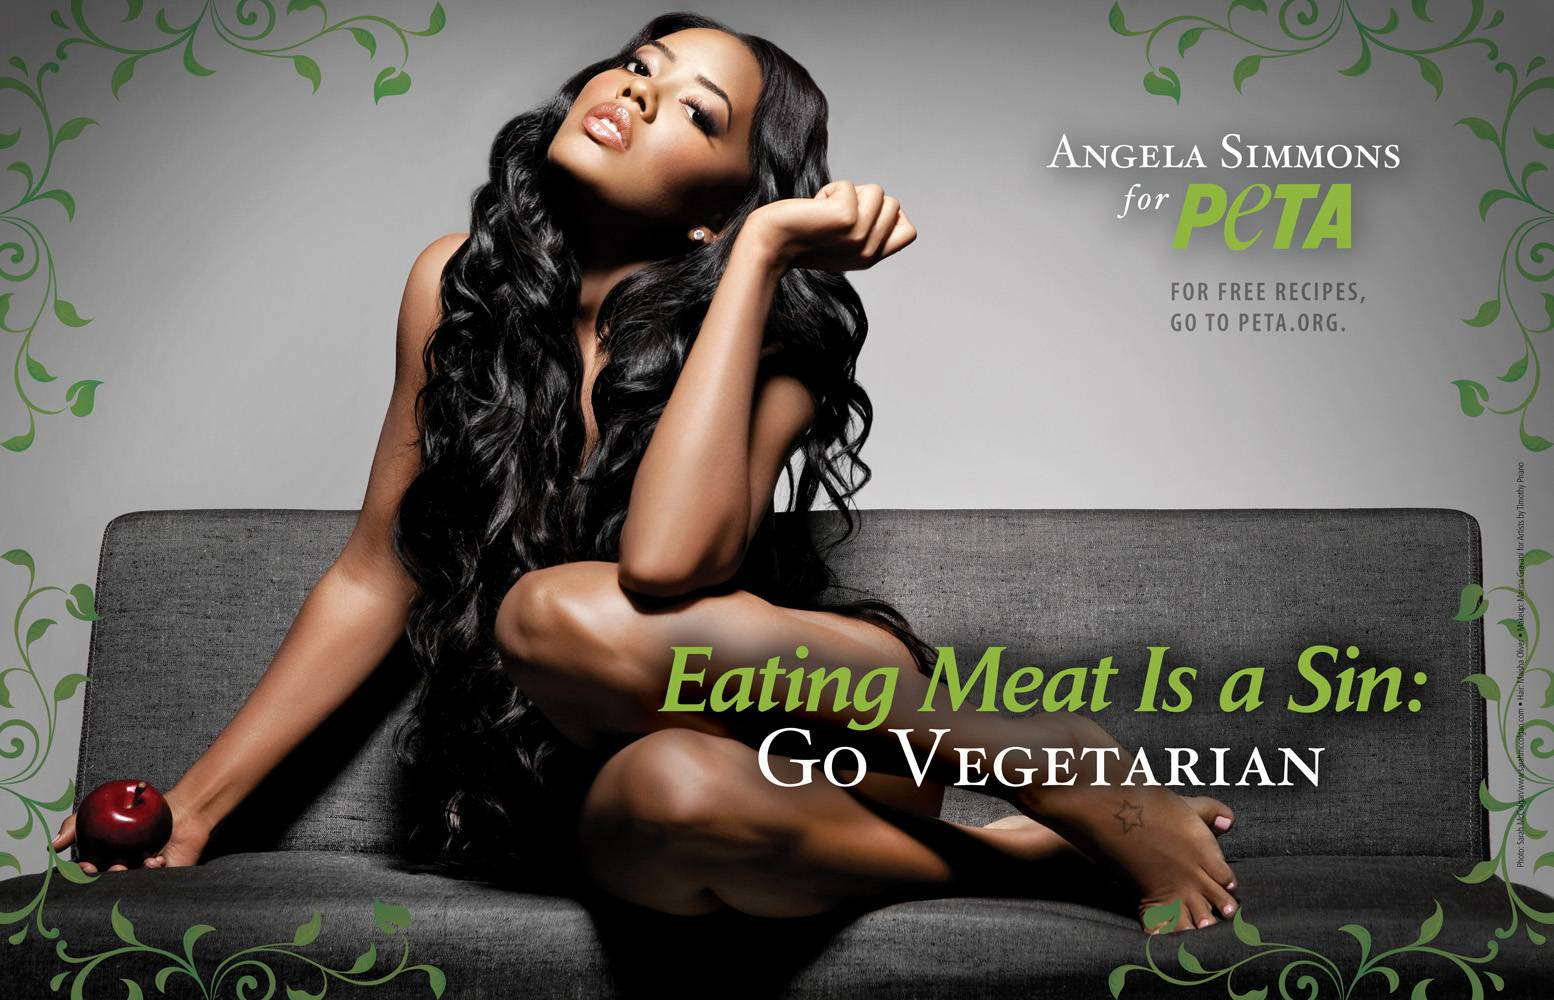 Eating Meat is a Sin: Go Vegetarian